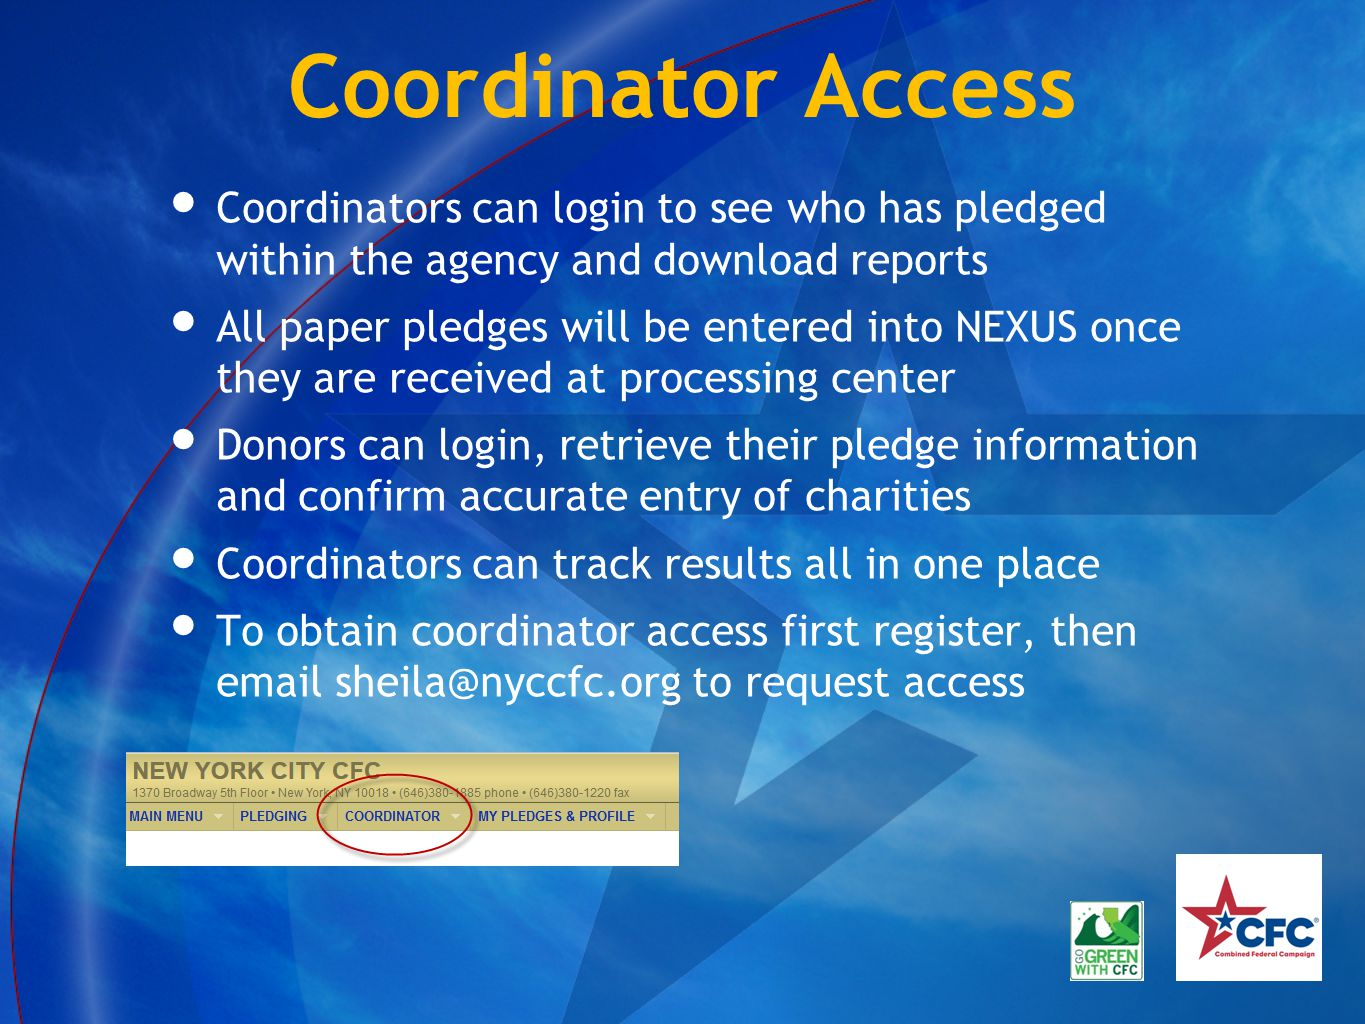 Coordinator Access Coordinators can login to see who has pledged within the agency and download reports All paper pledges will be entered into NEXUS once they are received at processing center Donors can login, retrieve their pledge information and confirm accurate entry of charities Coordinators can track results all in one place To obtain coordinator access first register, then email sheila@nyccfc.org to request access